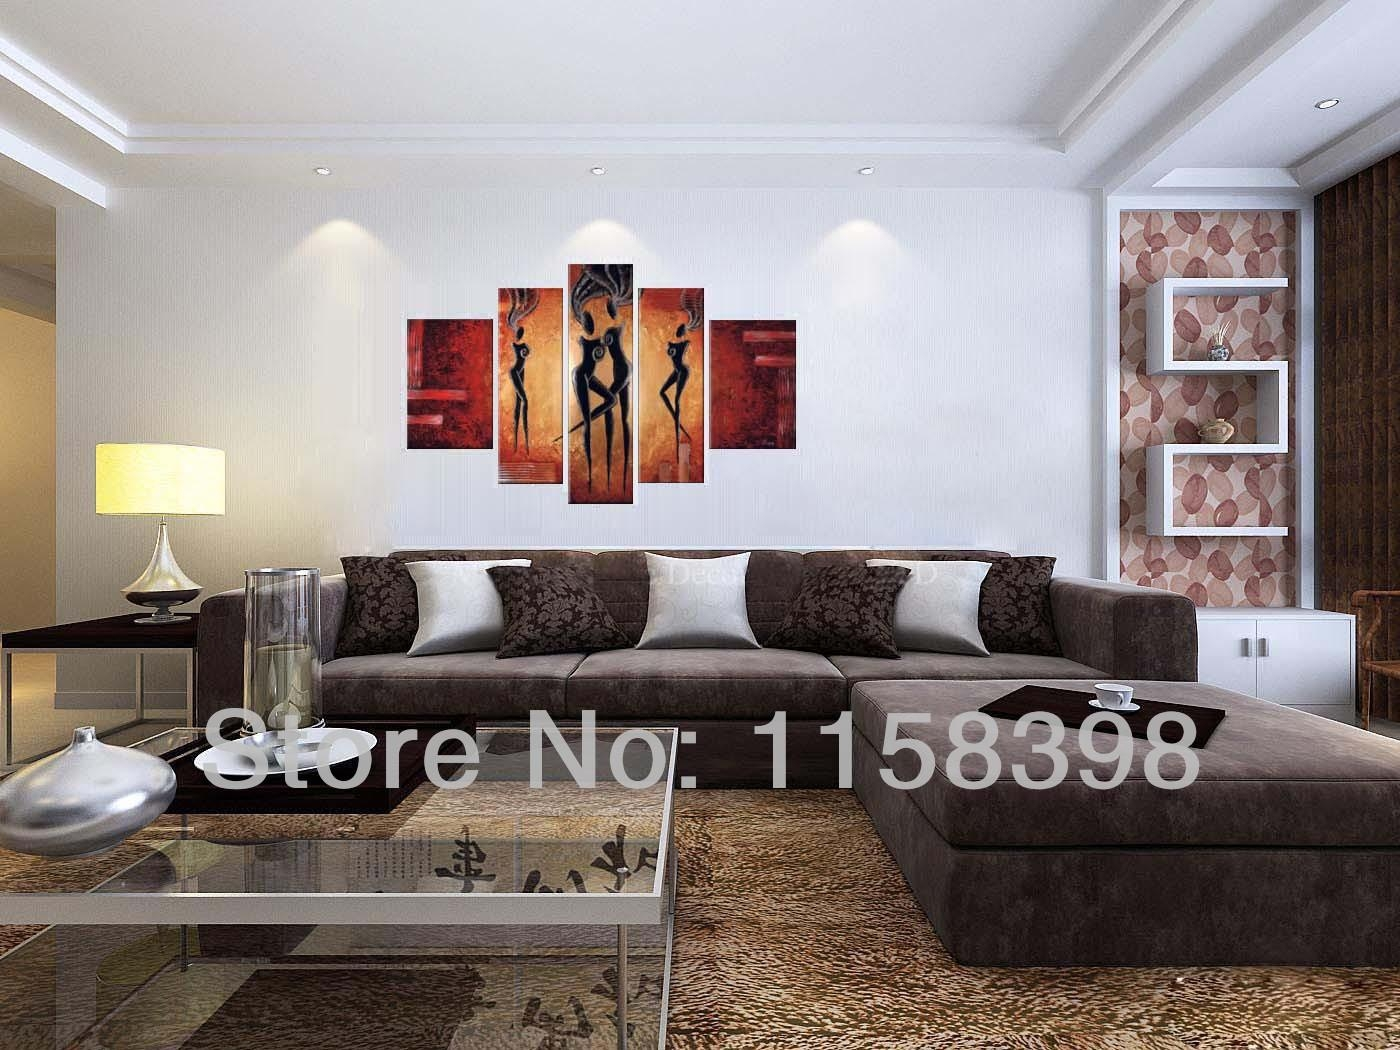 Fantastic Wall Art For Mens Bedroom Ultimate Interior Design For Inside Wall Art For Mens Bedroom (View 3 of 20)